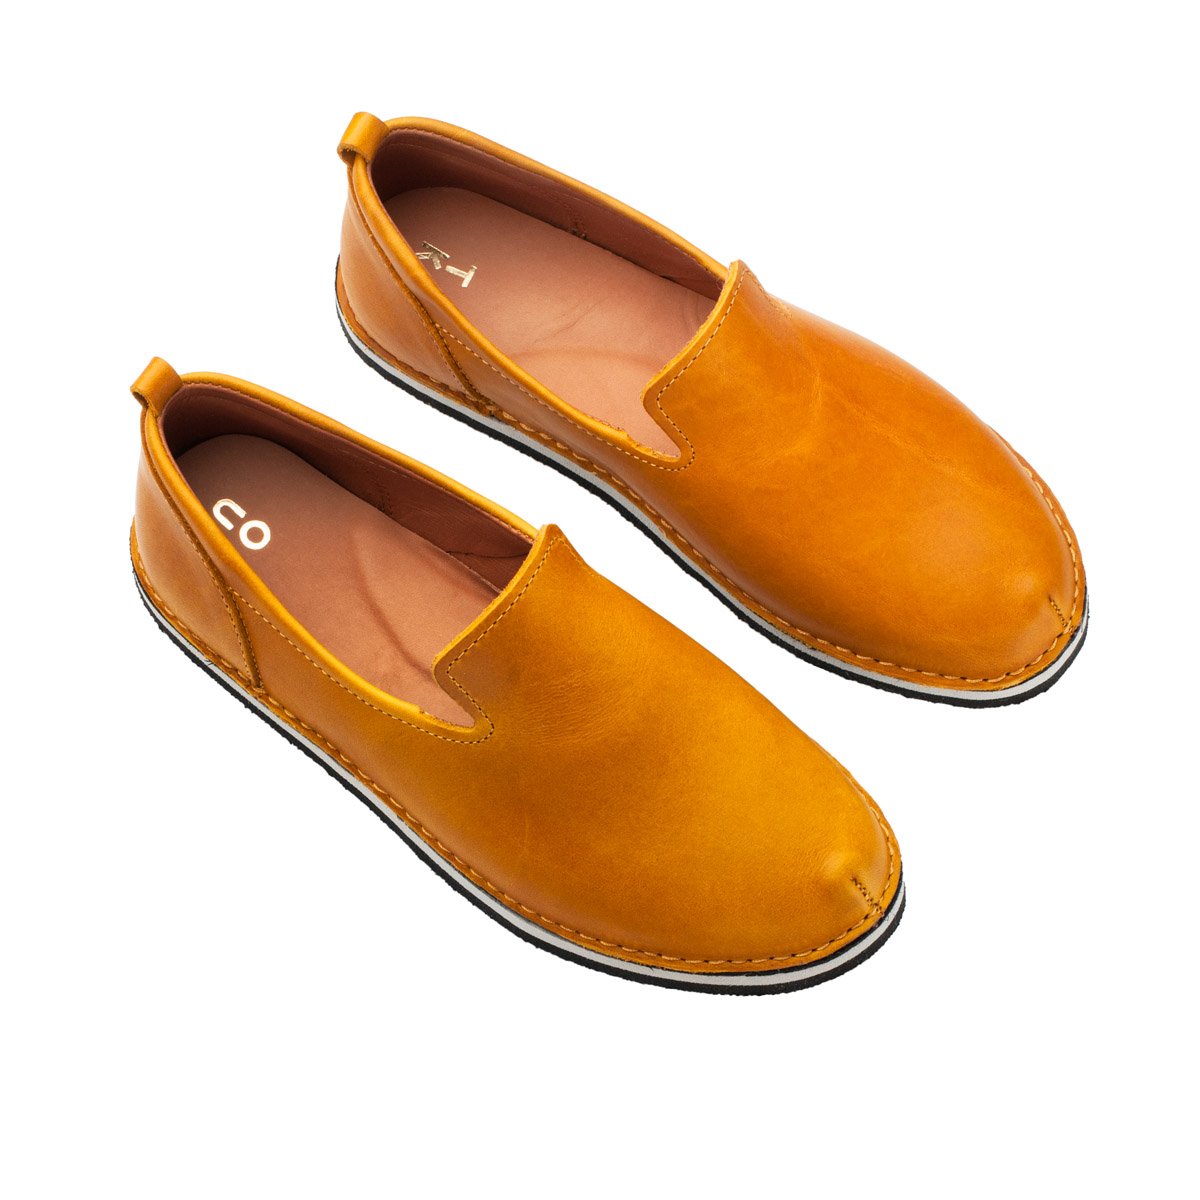 Classic loafer redefined